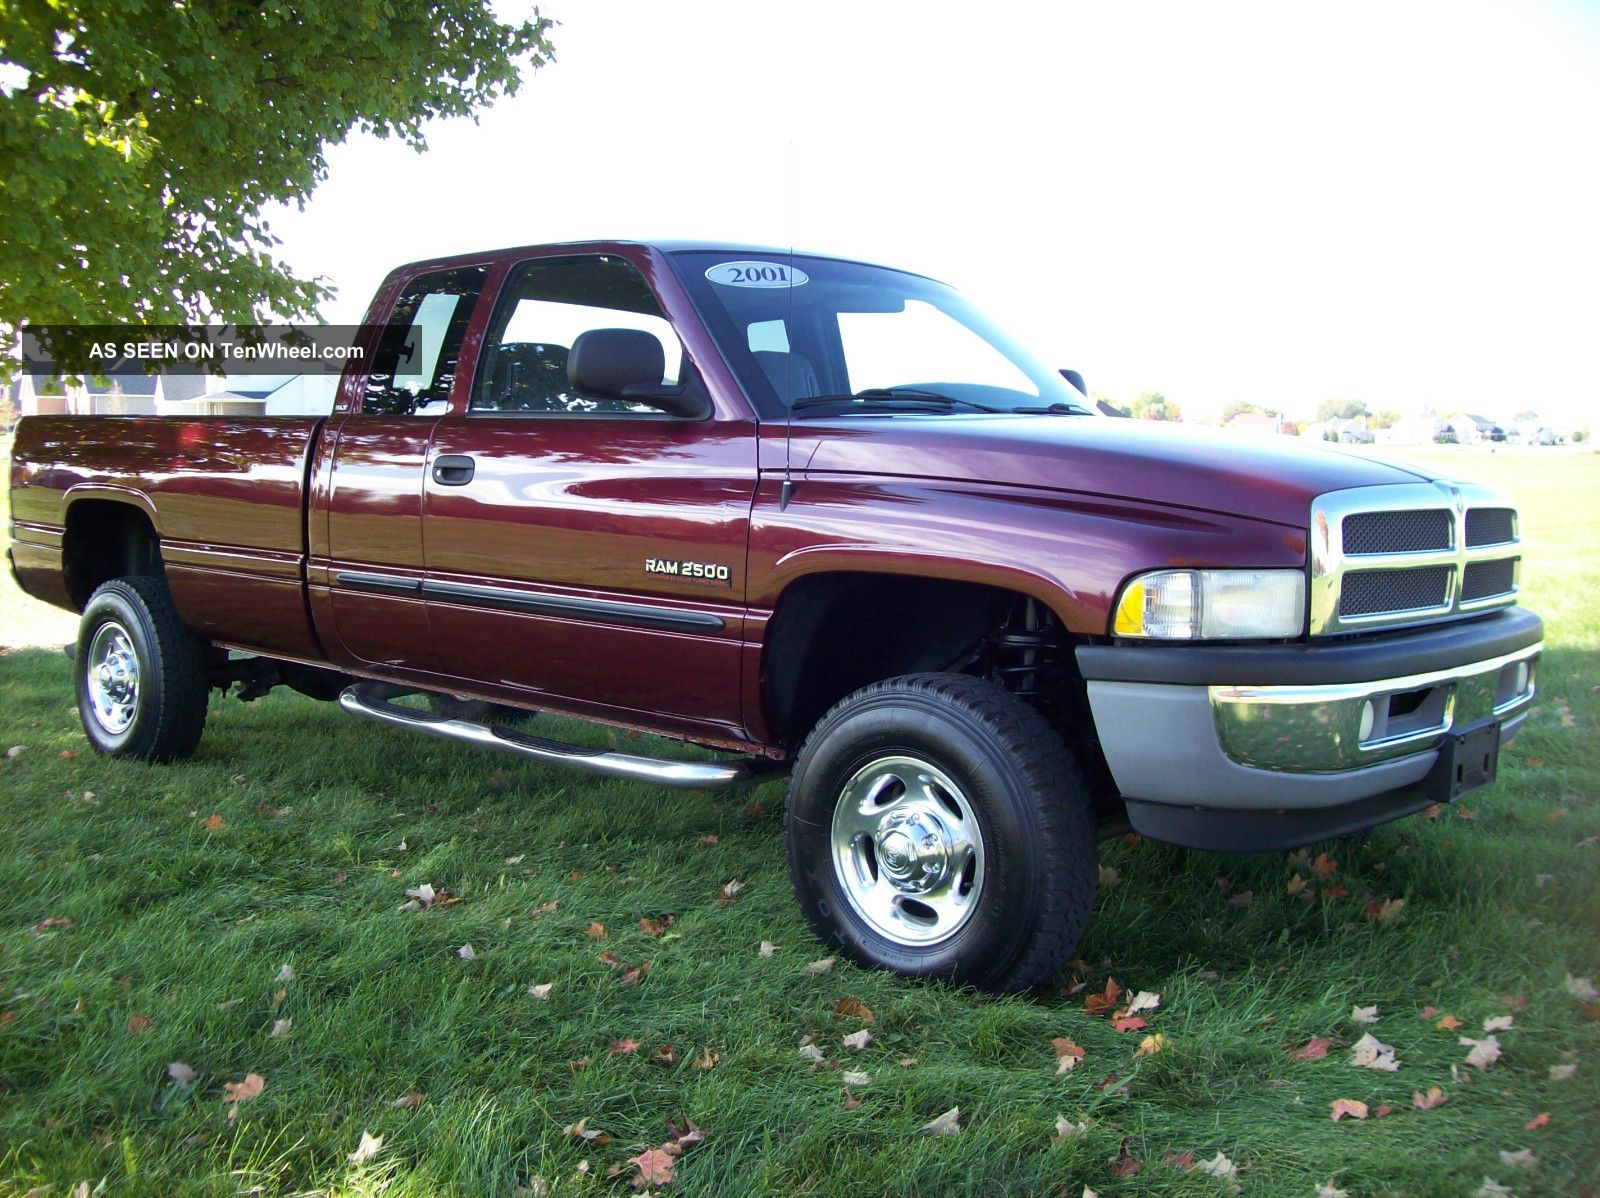 2001 Dodge Ram 2500 Quad Cab 4x4 Slt Manual Cummins Diesel Long Bed No Rust